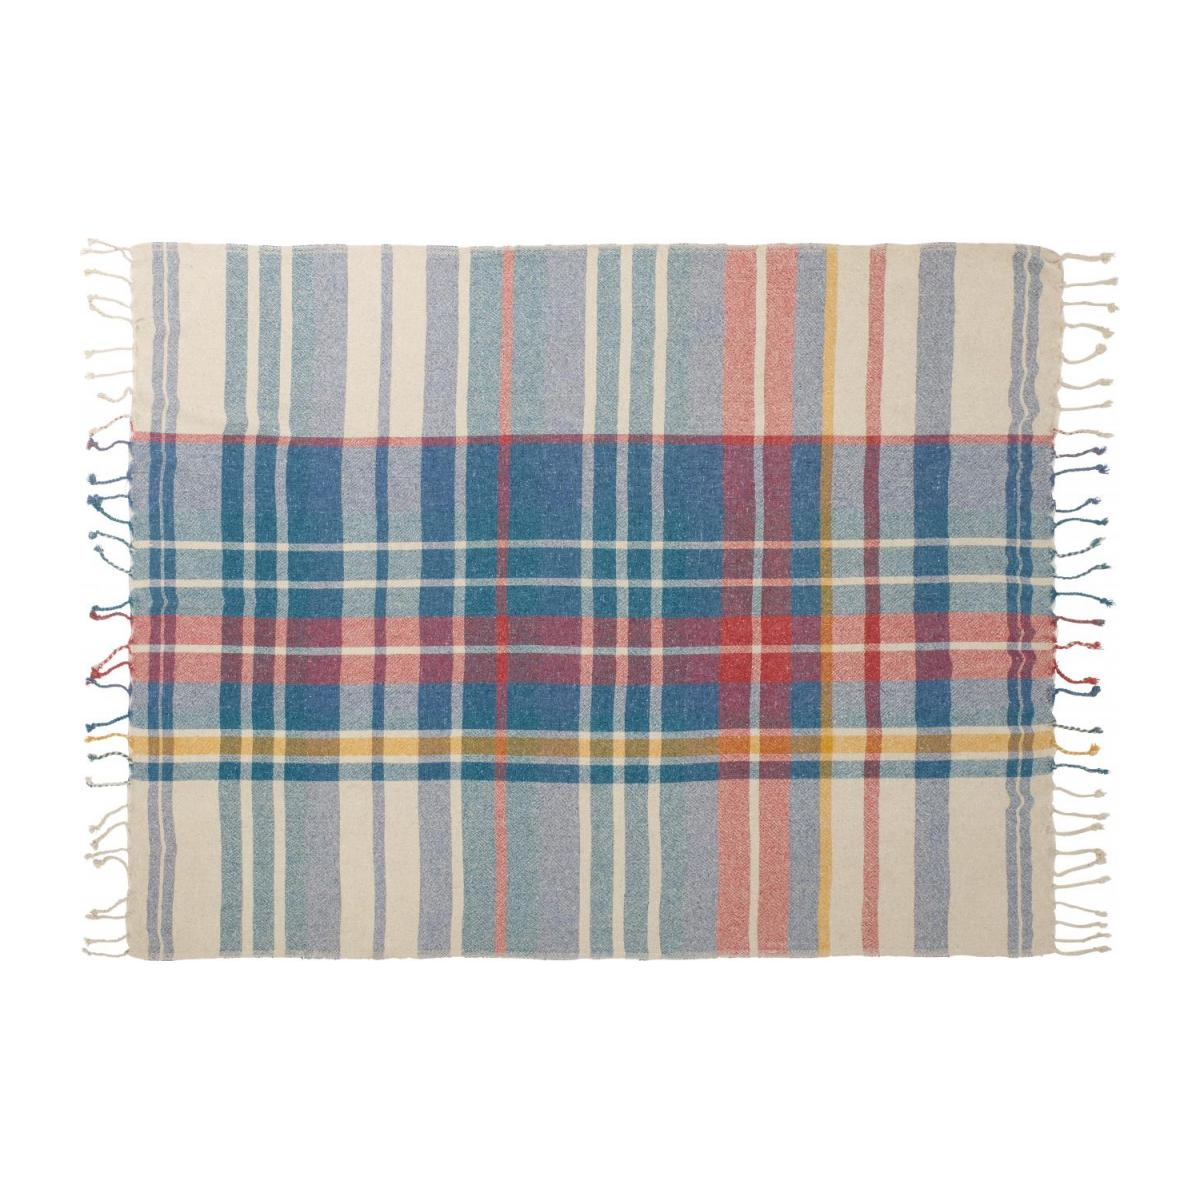 Plaid en Tartan - 130 x 170 cm - Multicolore n°2